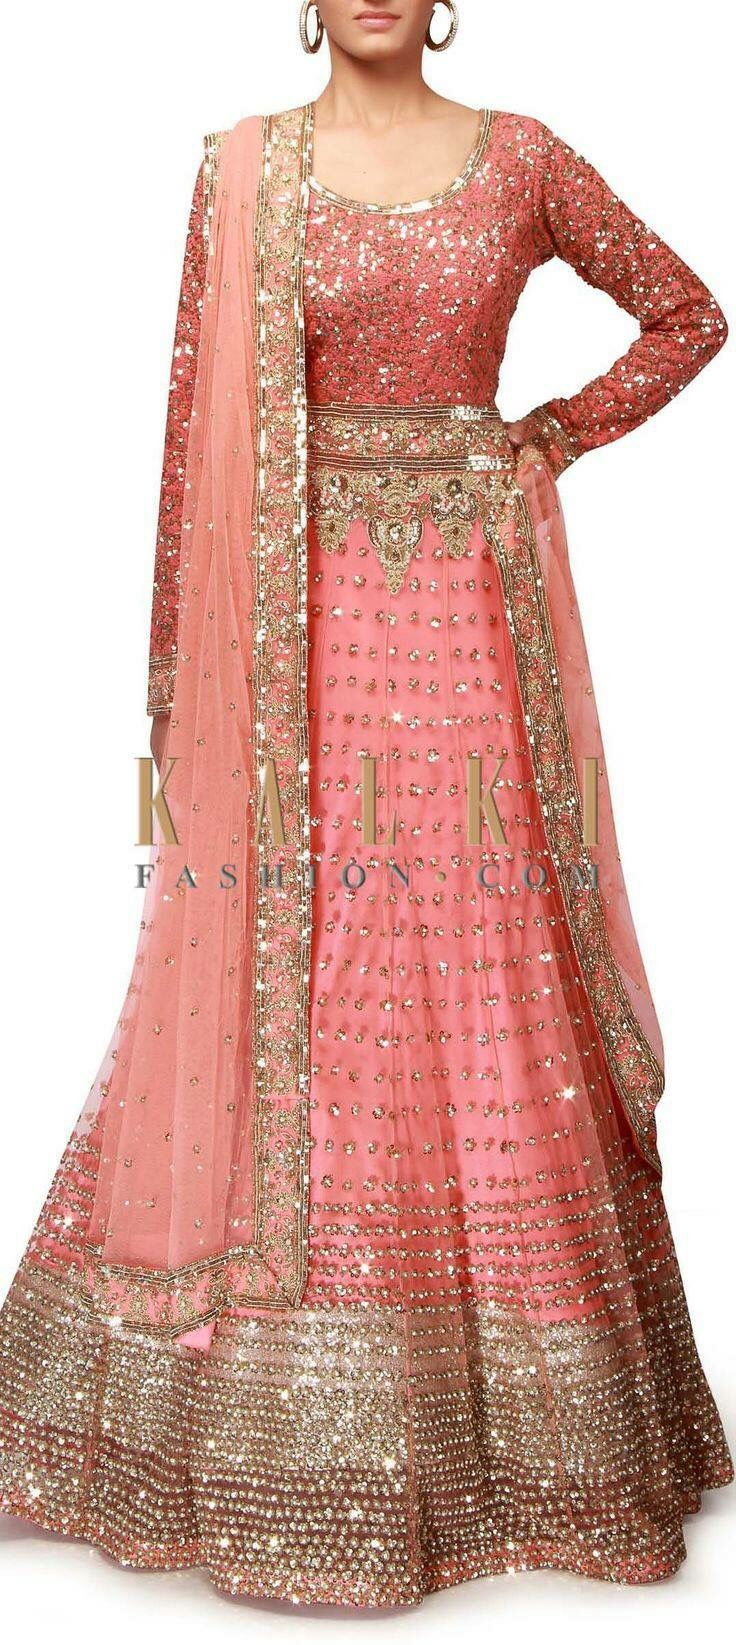 Harry potter wedding dress  My choice for the patil twinus Indian dress in Harry Potter movieus